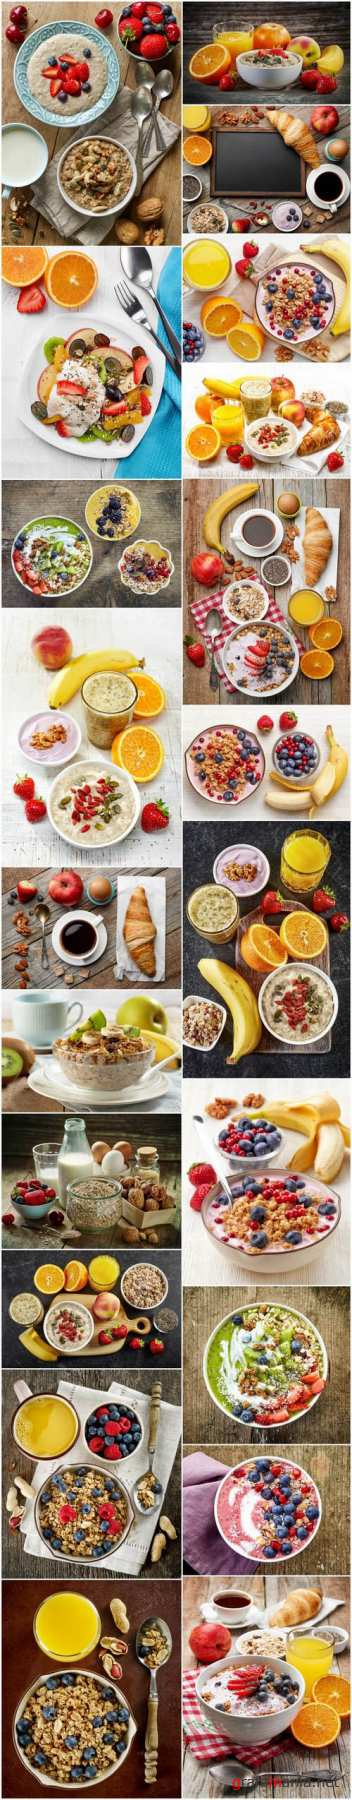 Healthy breakfast ingredients 2 - 21xUHQ JPEG